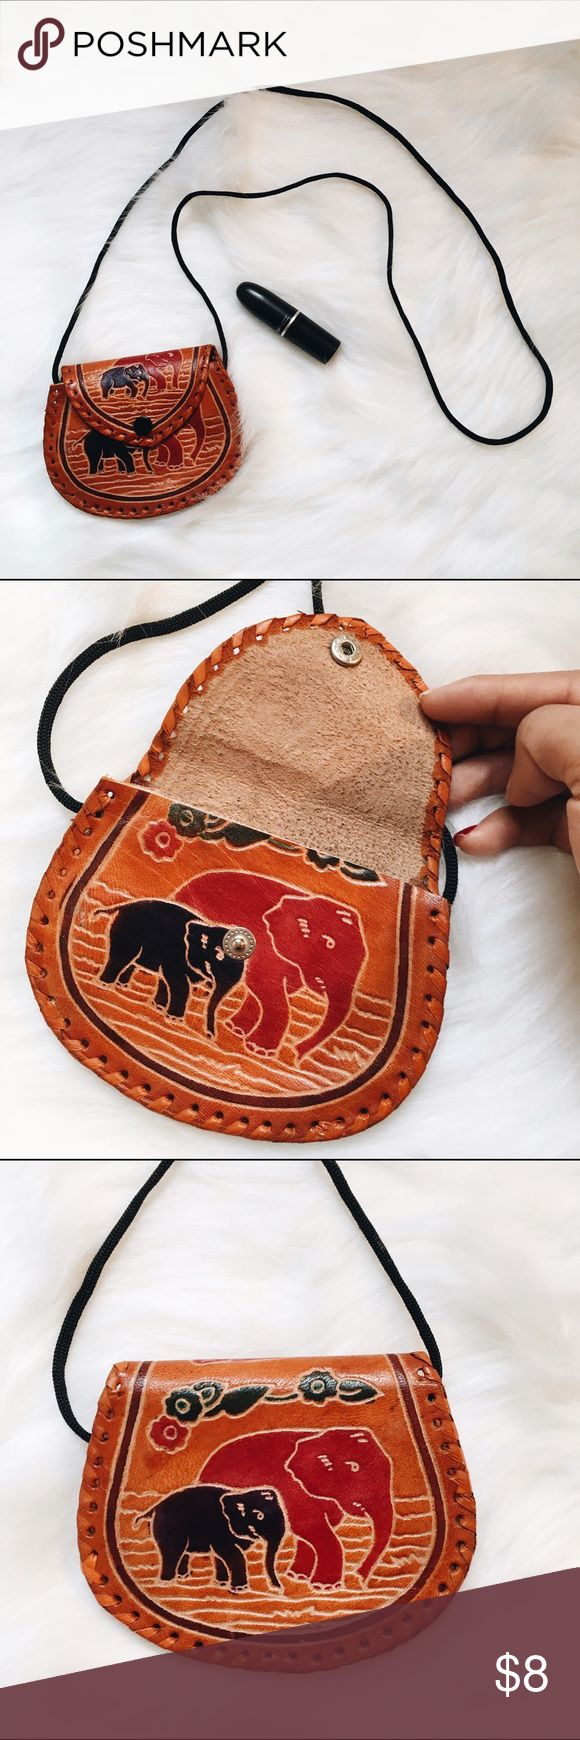 🐘 Adorable Elephant Coin Purse 🐘 Has simple black strap to wear as a crossbody. Button closure. Fits coins, cards, ids, lipsticks, chapsticks. #purse #coinpurse #vintage #elephant Bags Mini Bags